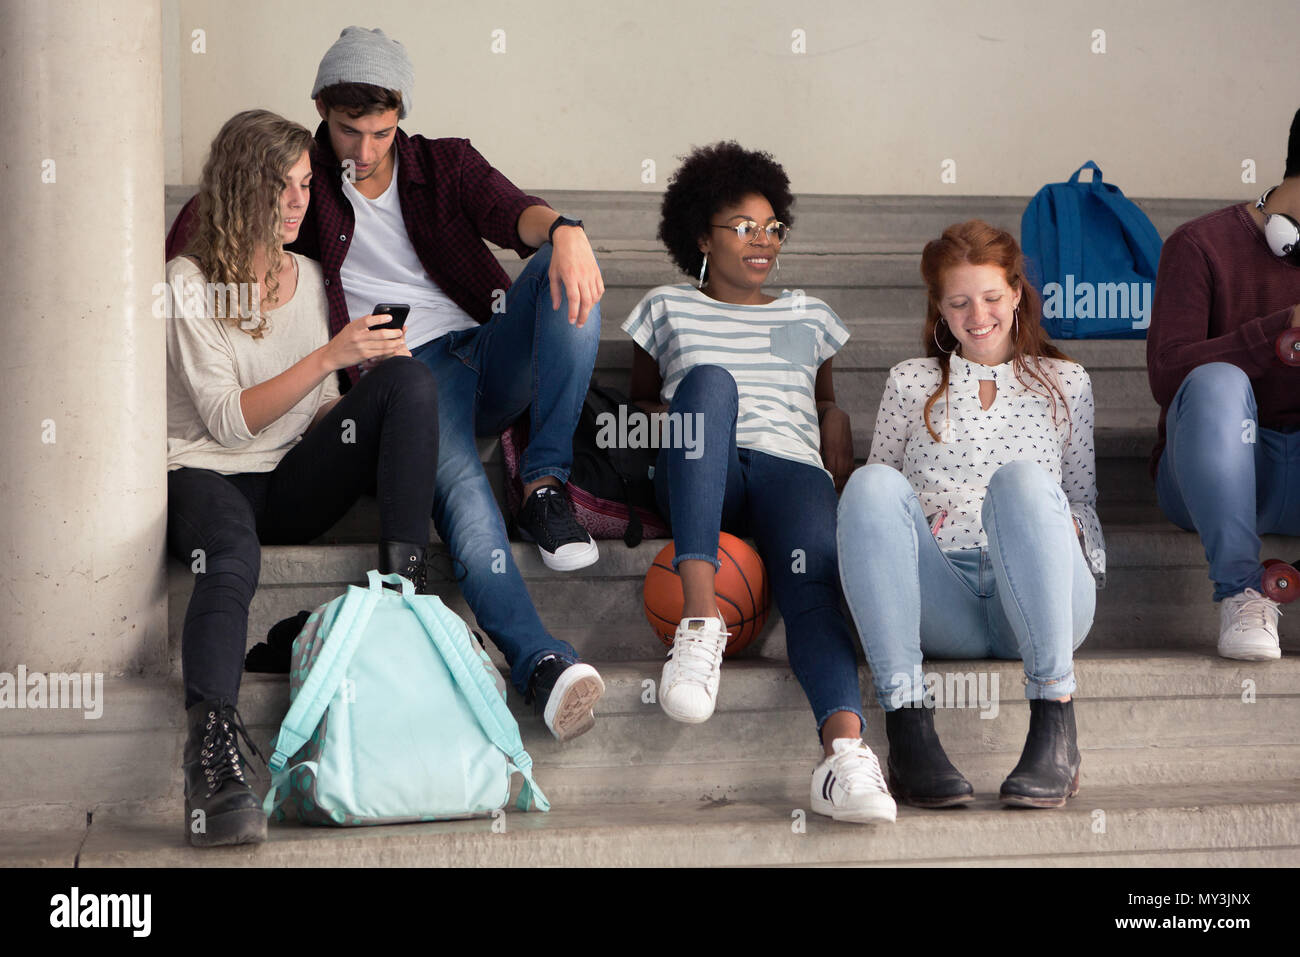 Friends hanging out together during break at school - Stock Image